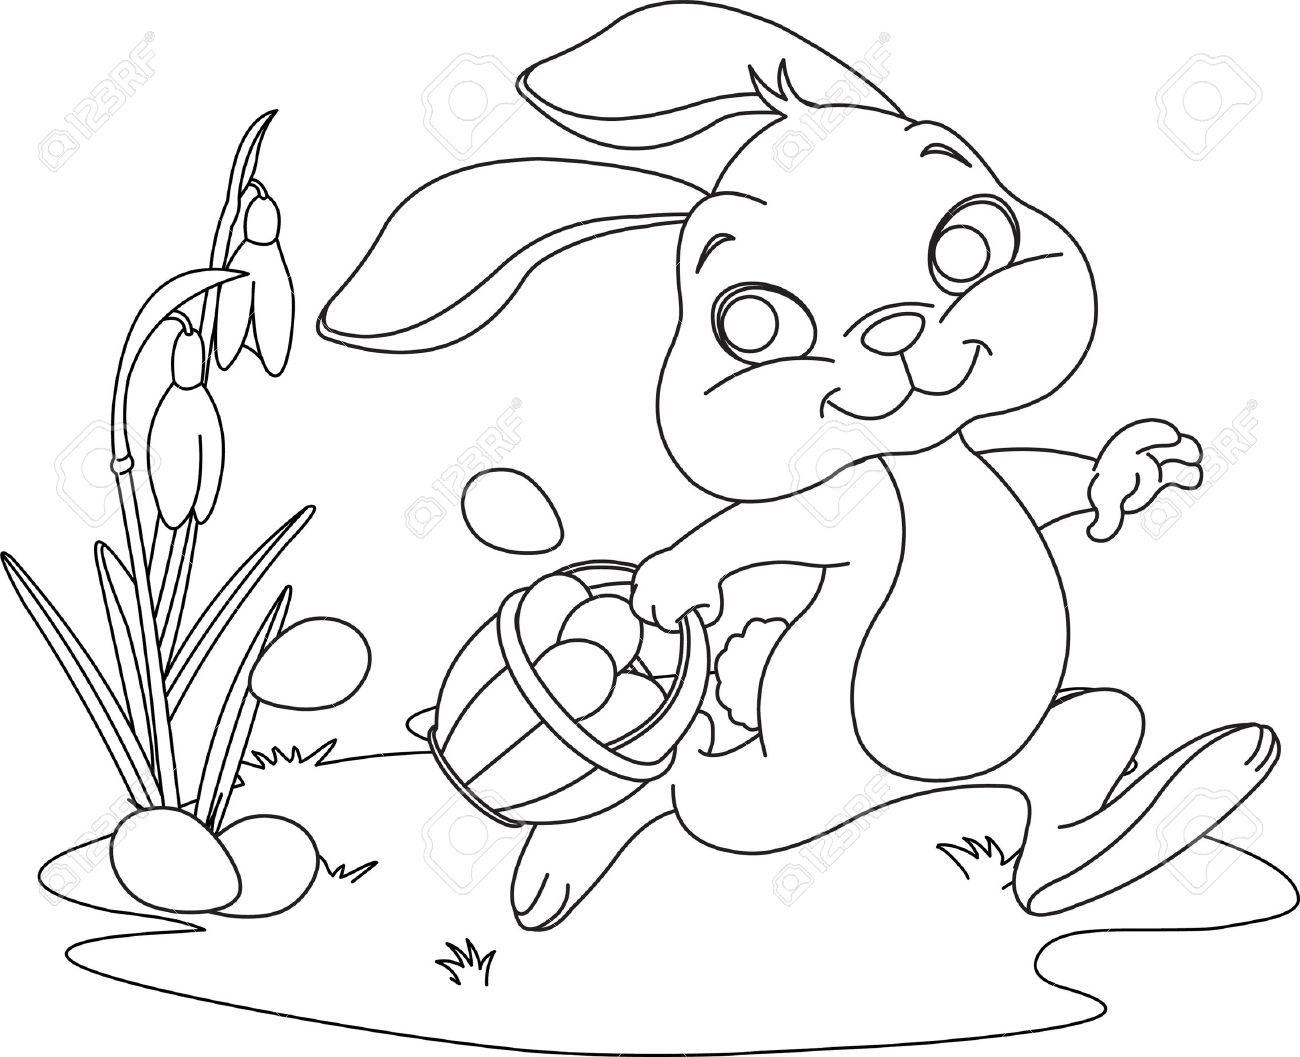 1300x1057 Cute Easter Bunny Hiding Eggs Coloring Page Royalty Free Cliparts